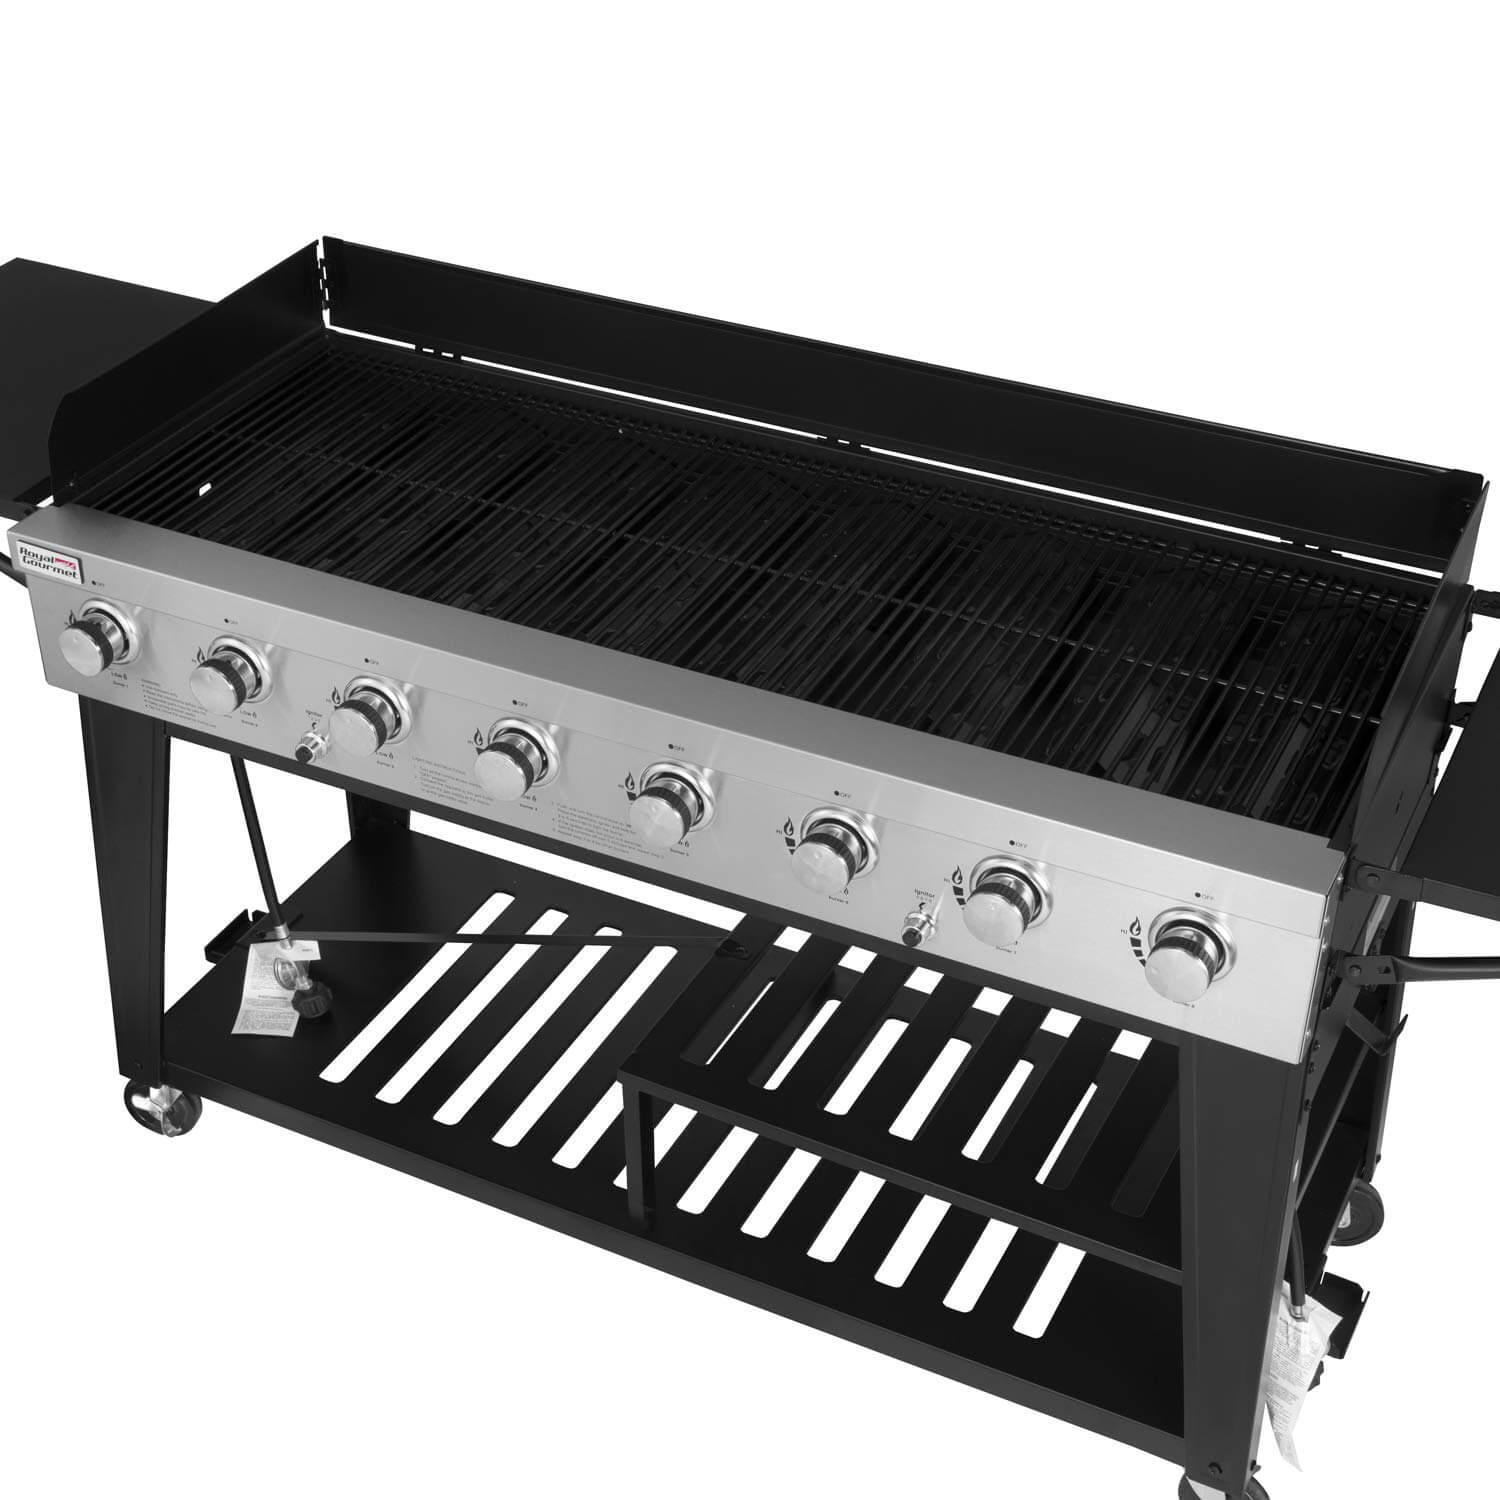 grill griddle, griddle for grill, royal gourmet grill, best flat top griddle